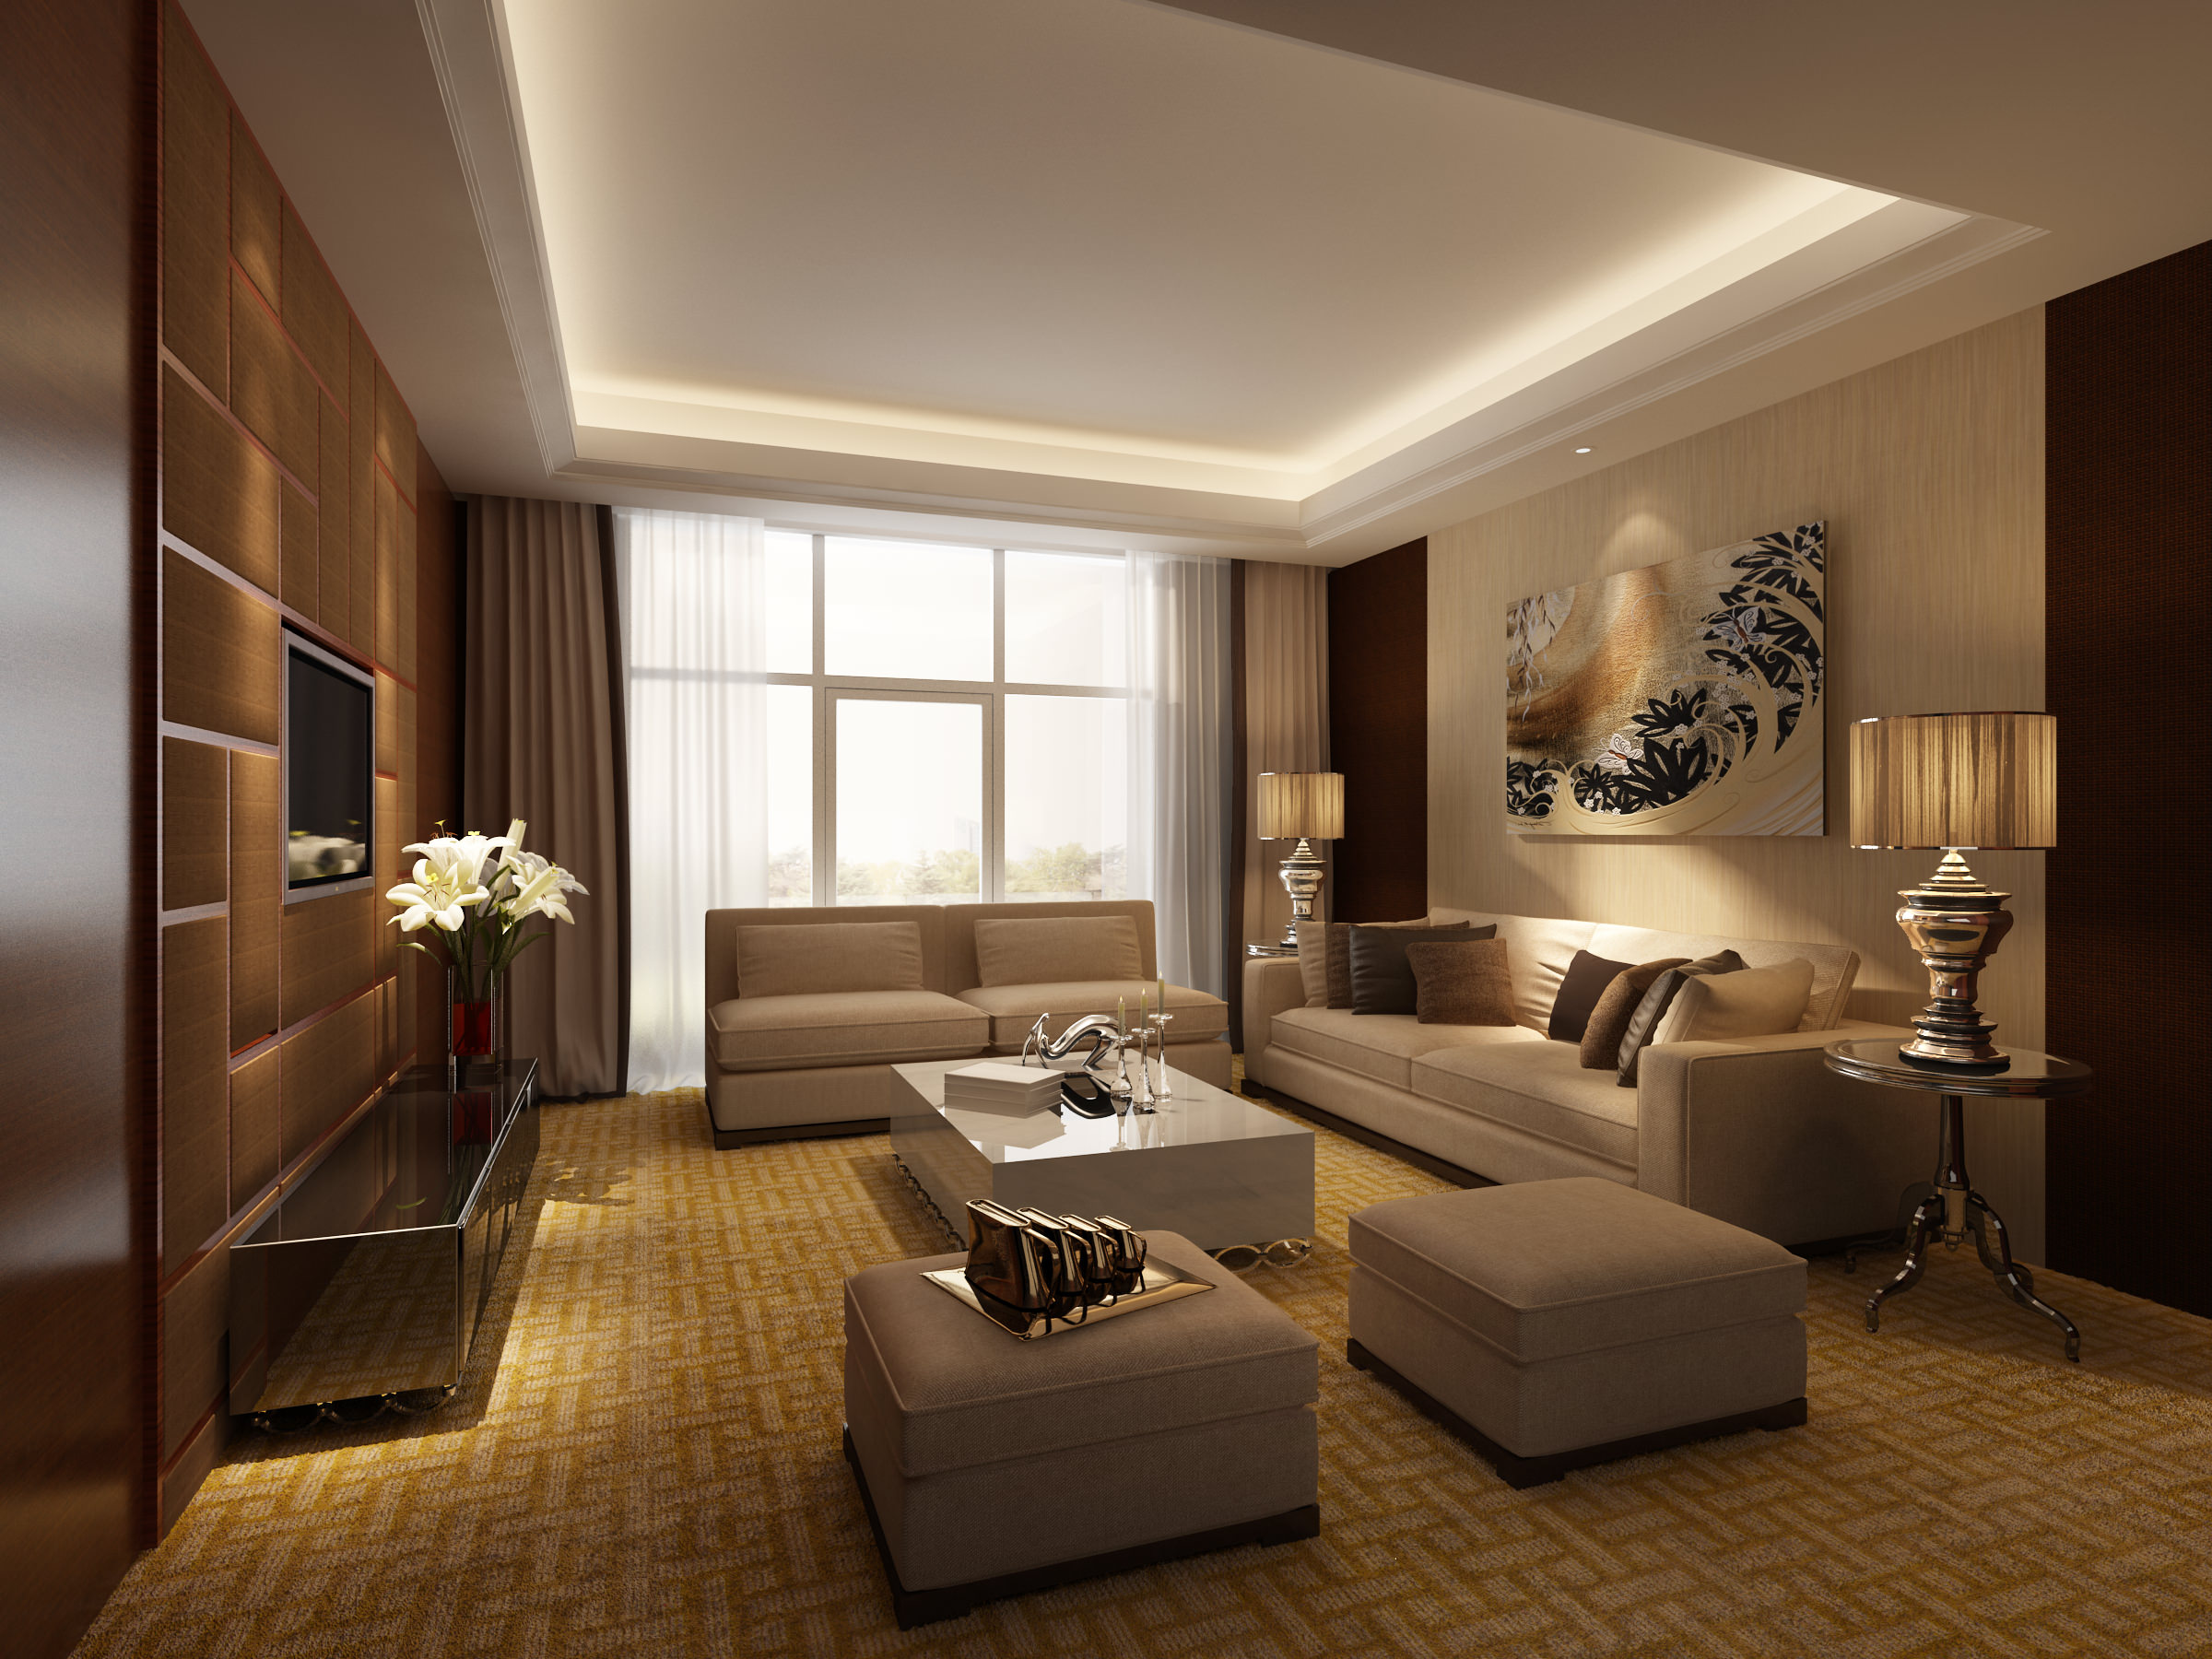 Model Bedroom living room and bedroom collection design 3d | cgtrader